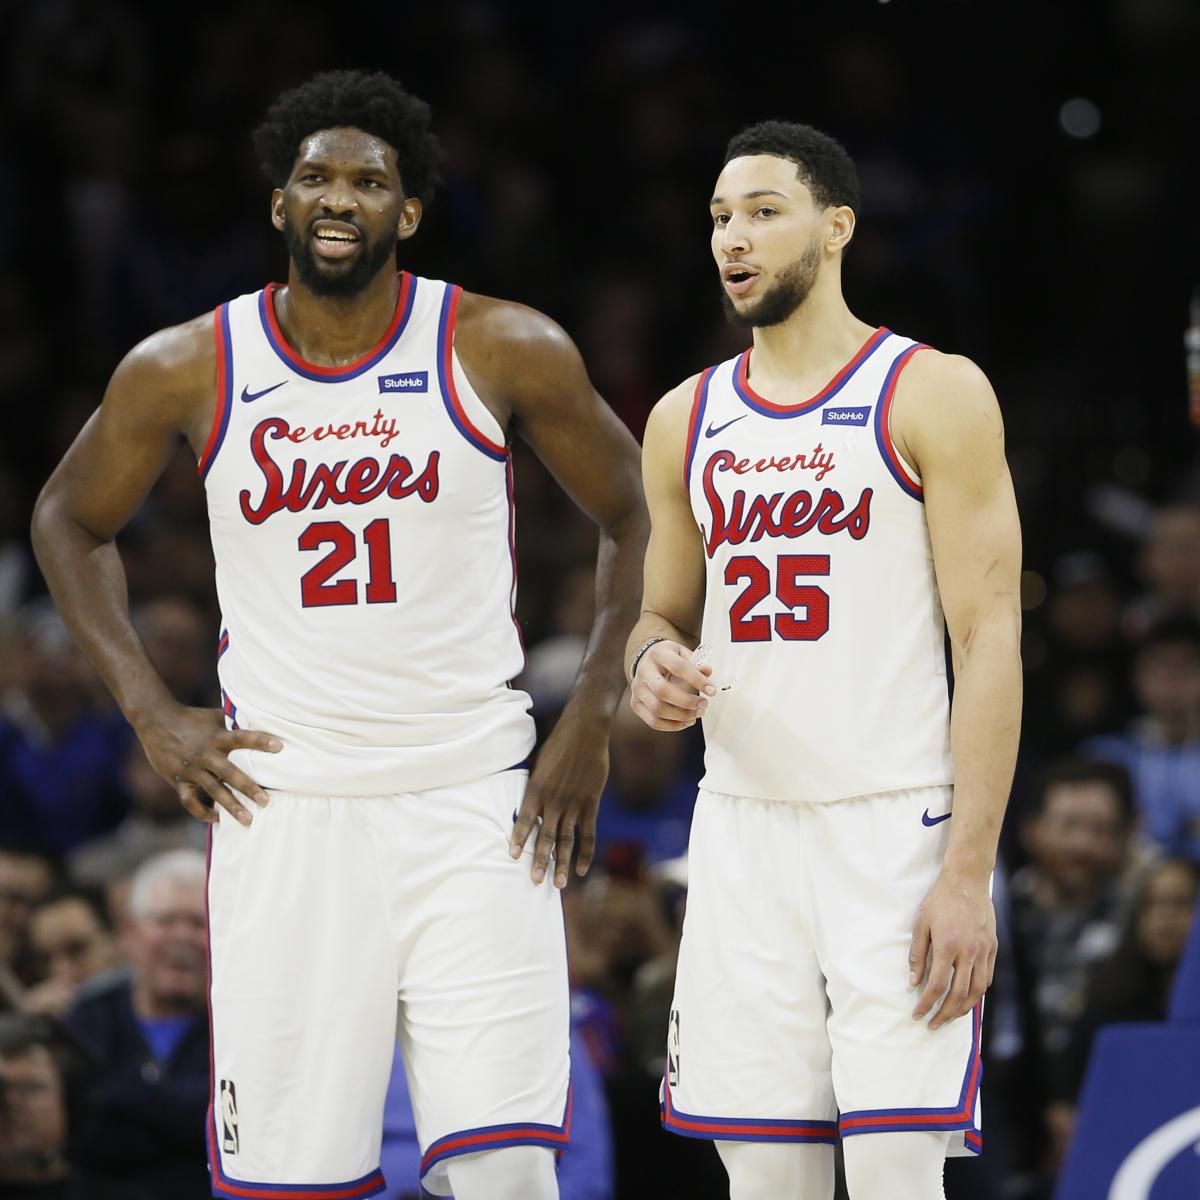 Joel Embiid, Ben Simmons 'Problem' Discussed by 76ers GM Elton Brand